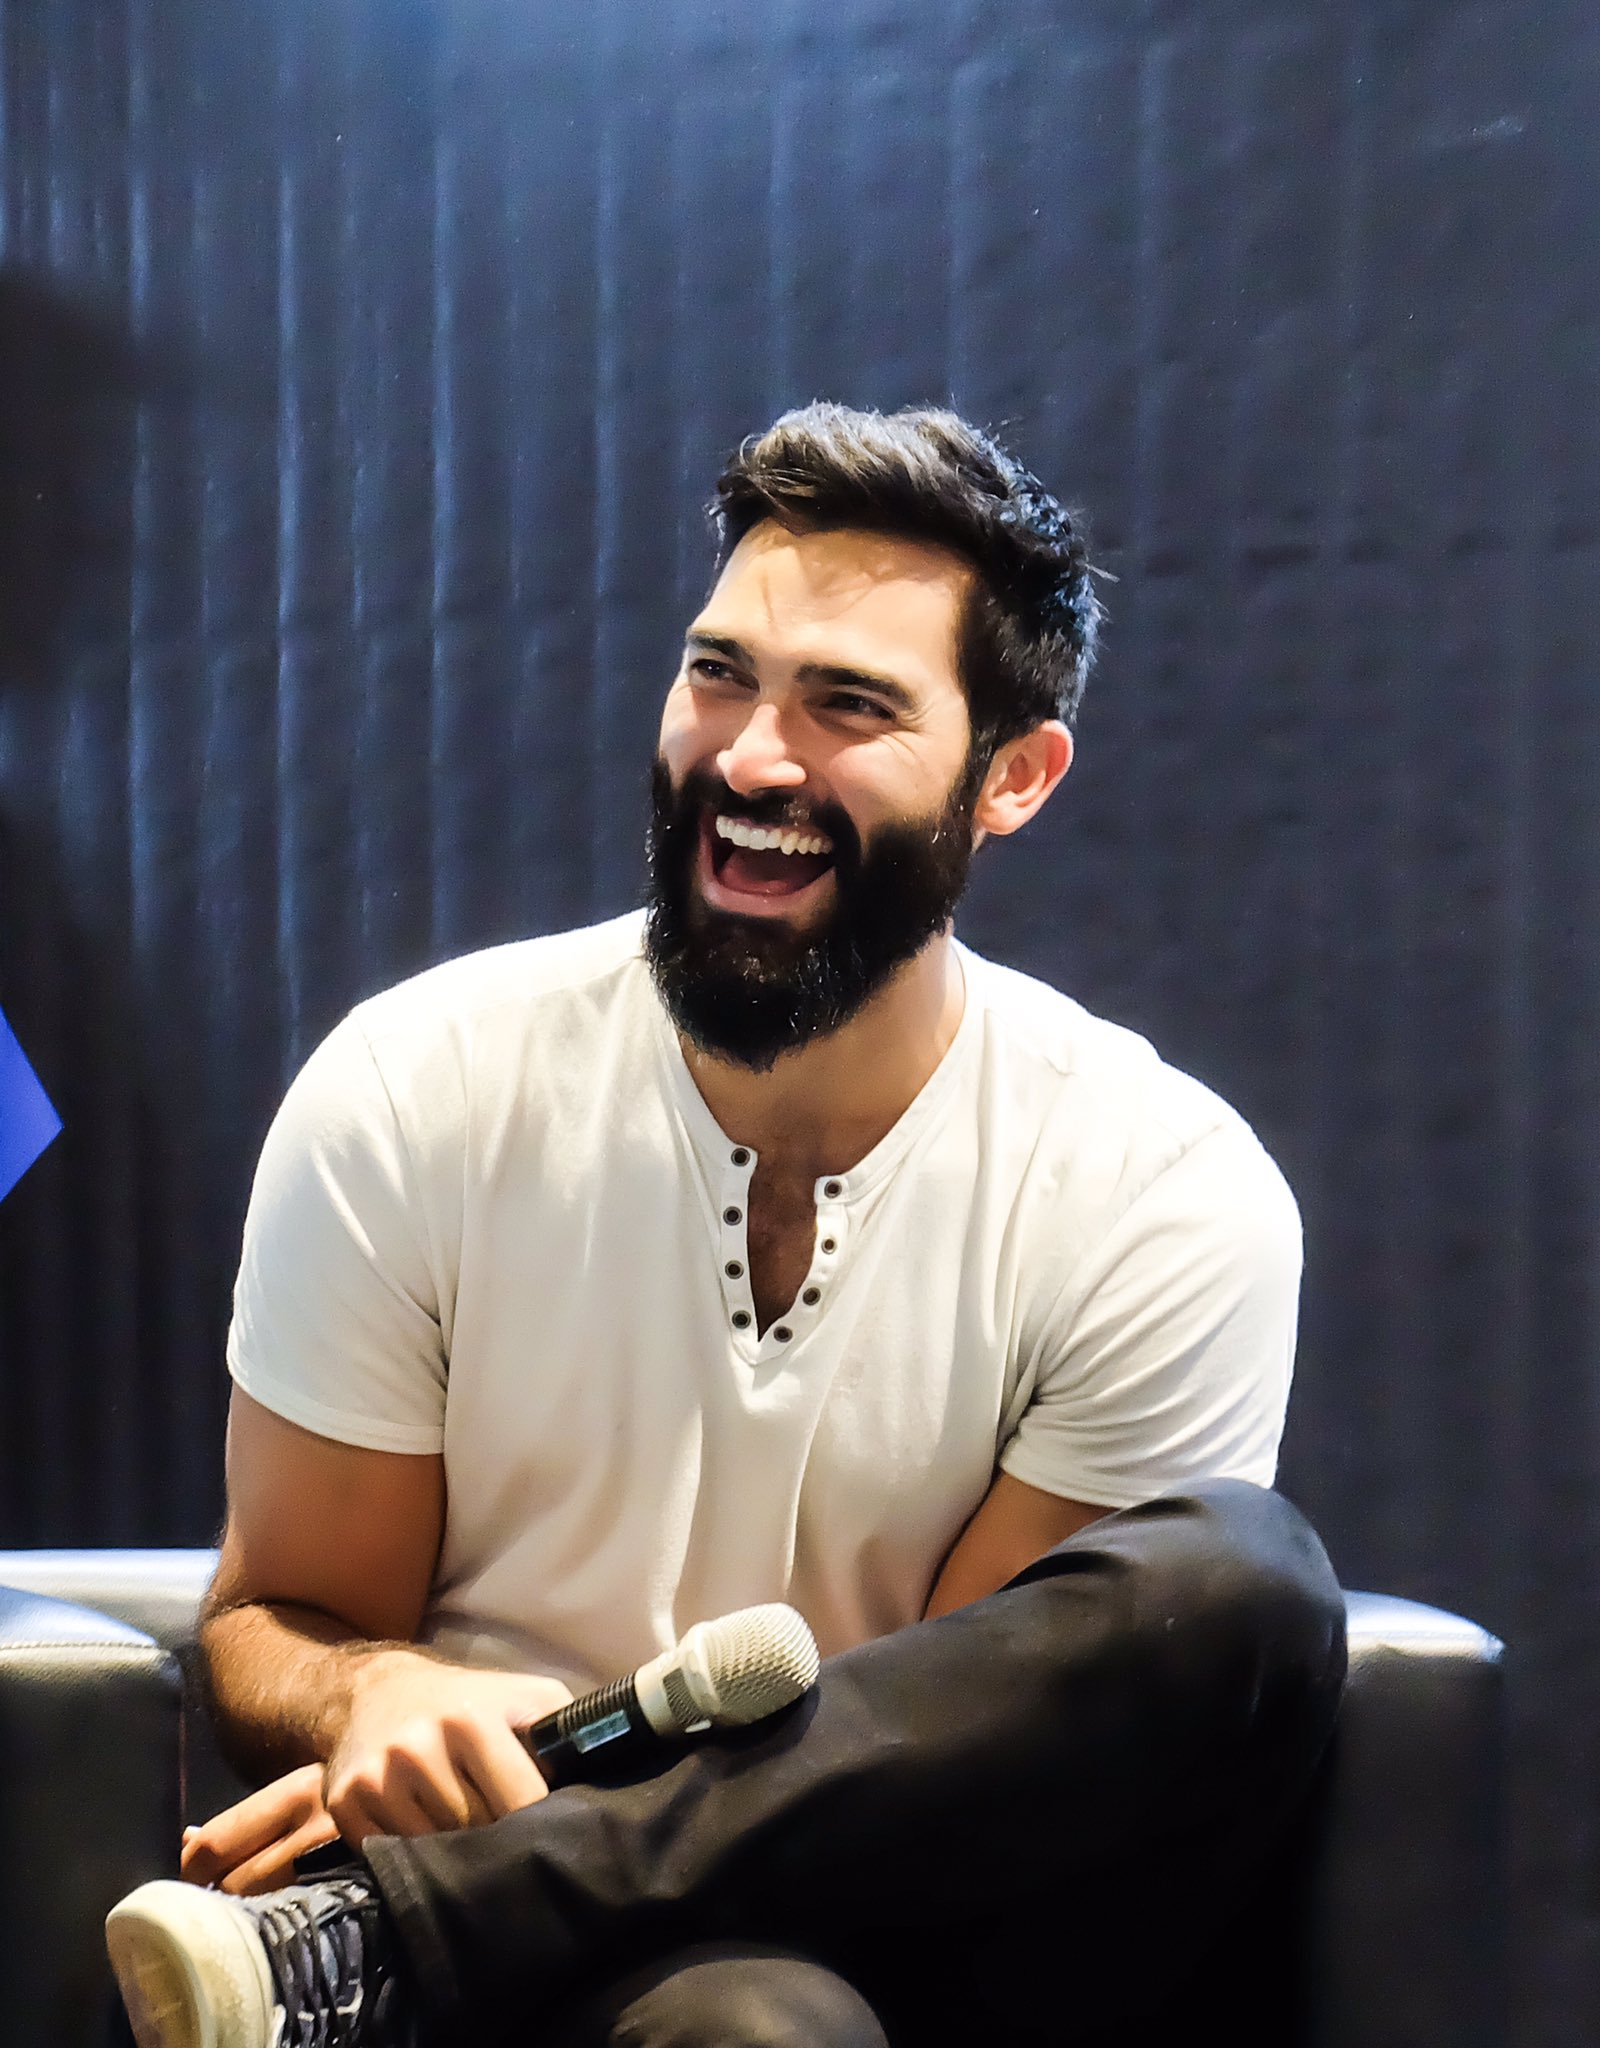 Happy birthday, Tyler Hoechlin! You mean the world to me, I love you so much!